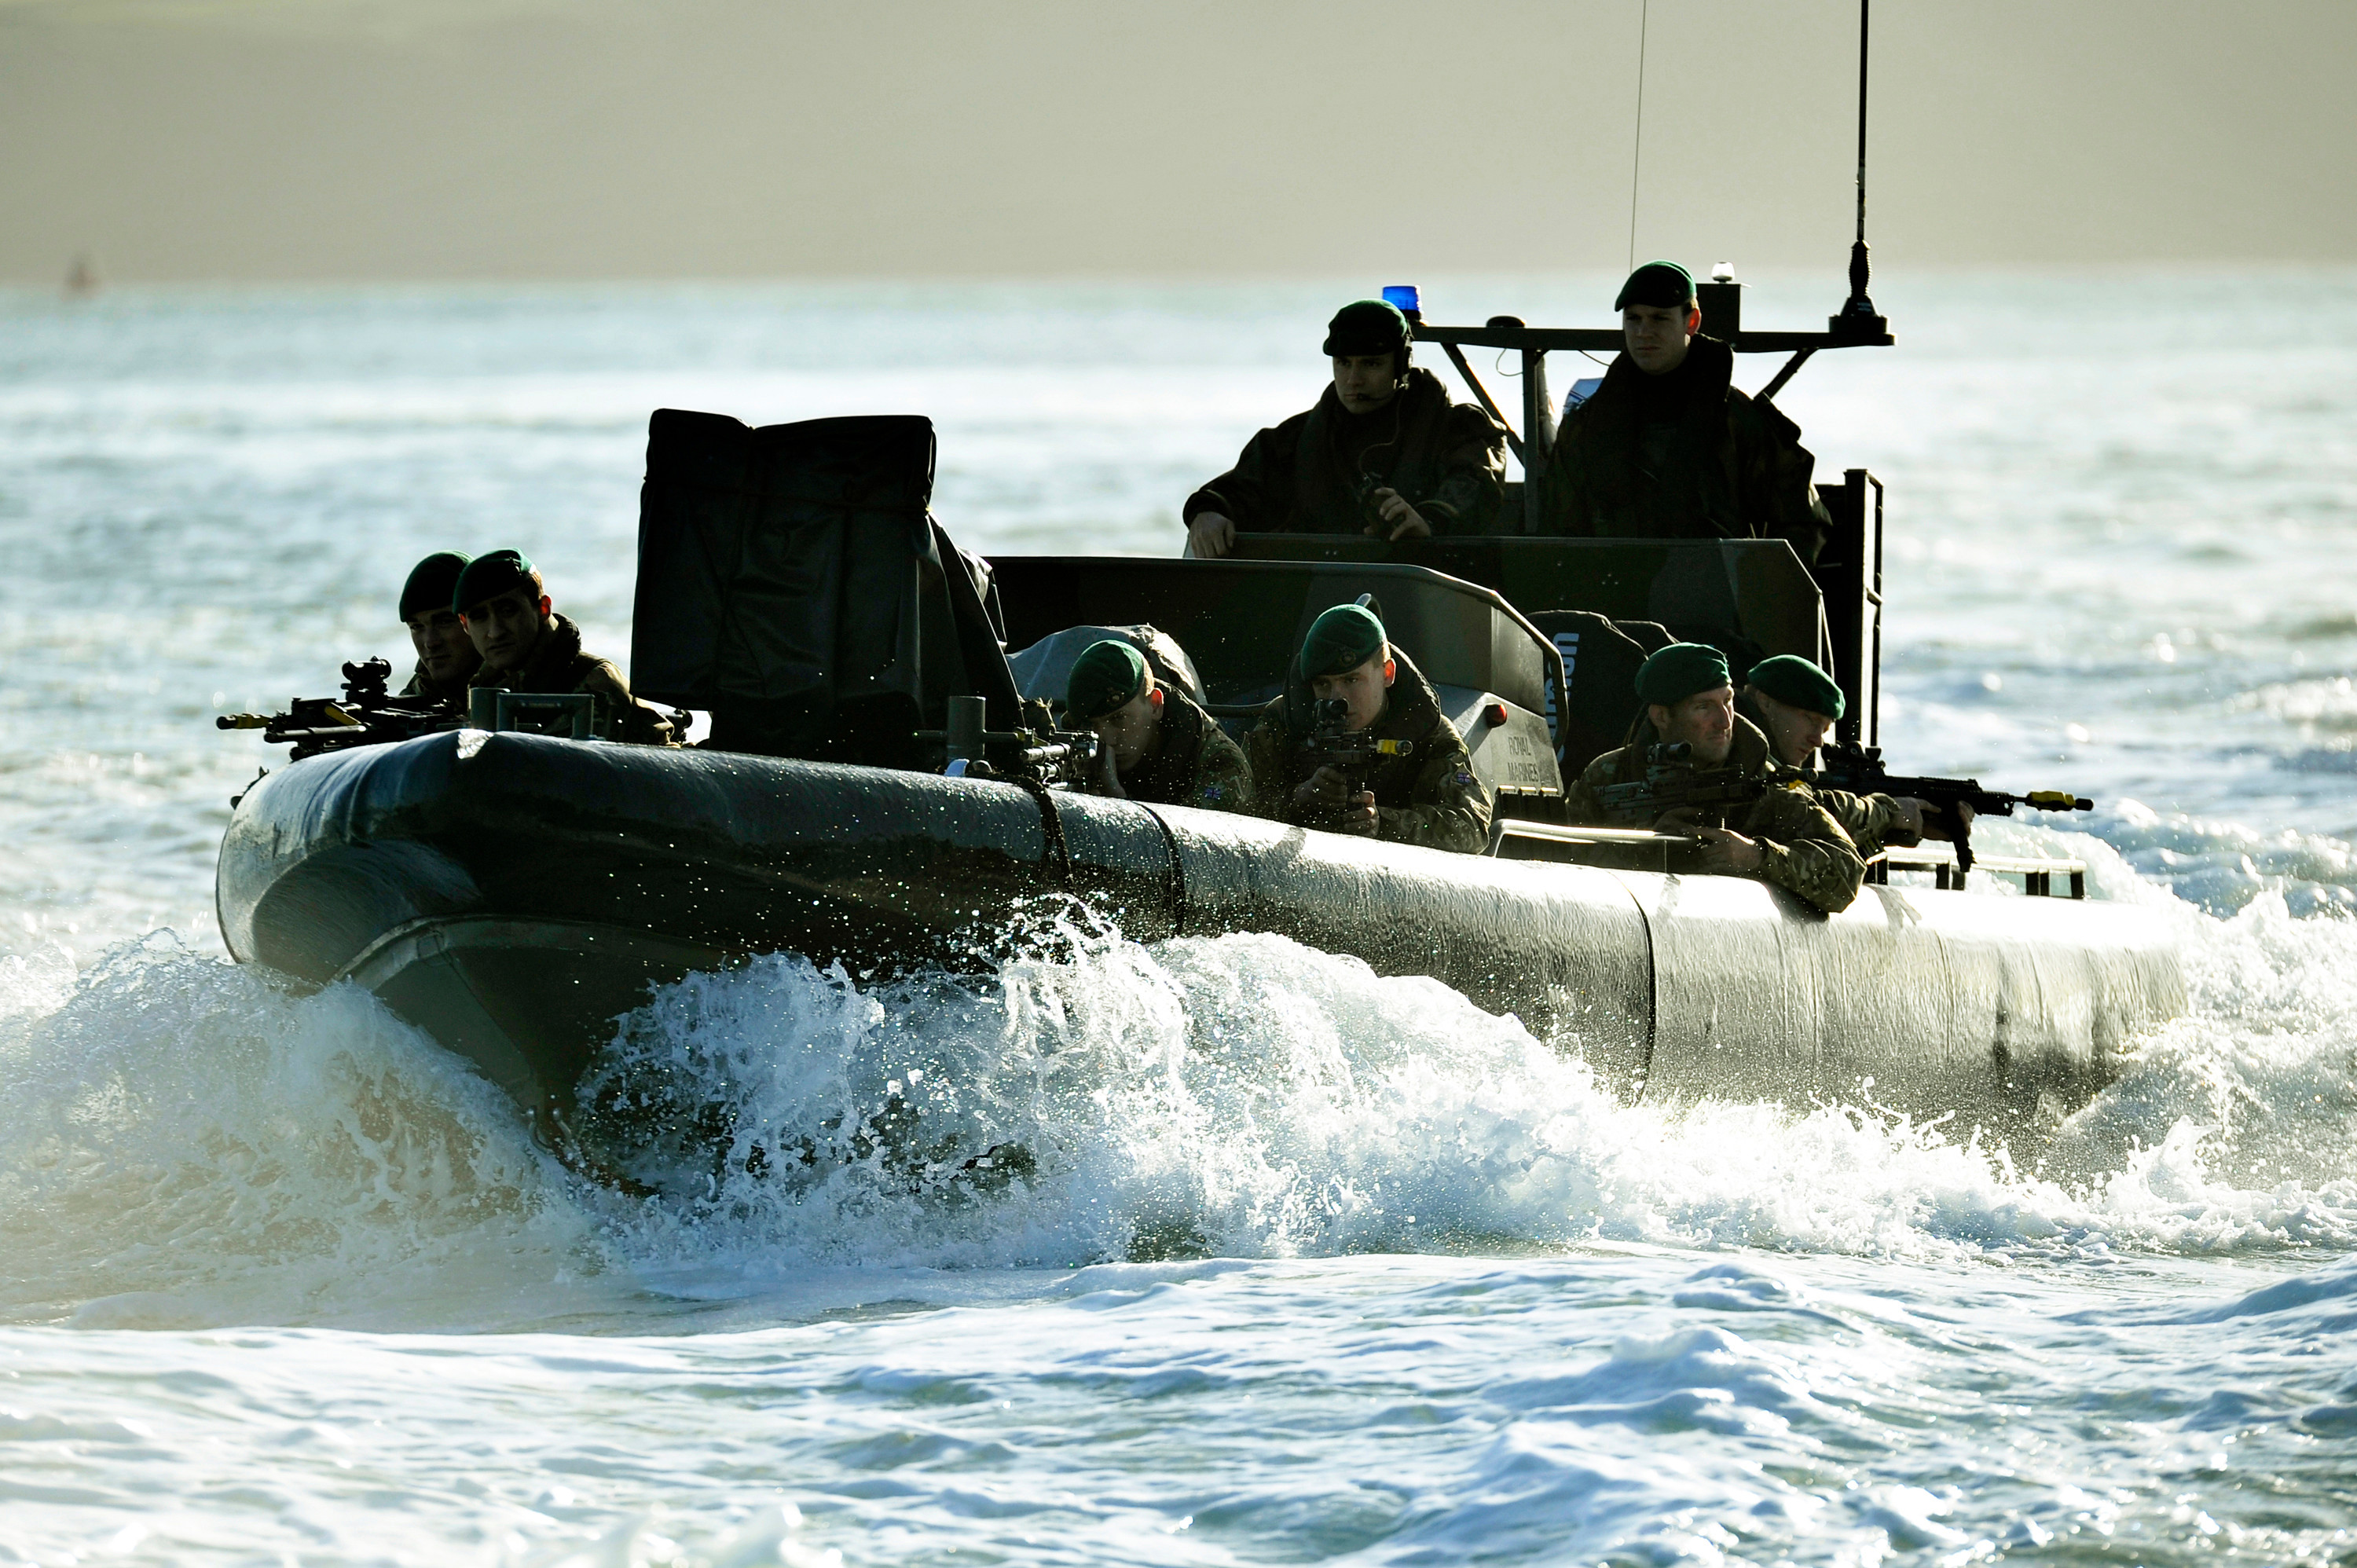 Members of the elite Special Boat Service (SBS) are reportedly heading to the Gulf